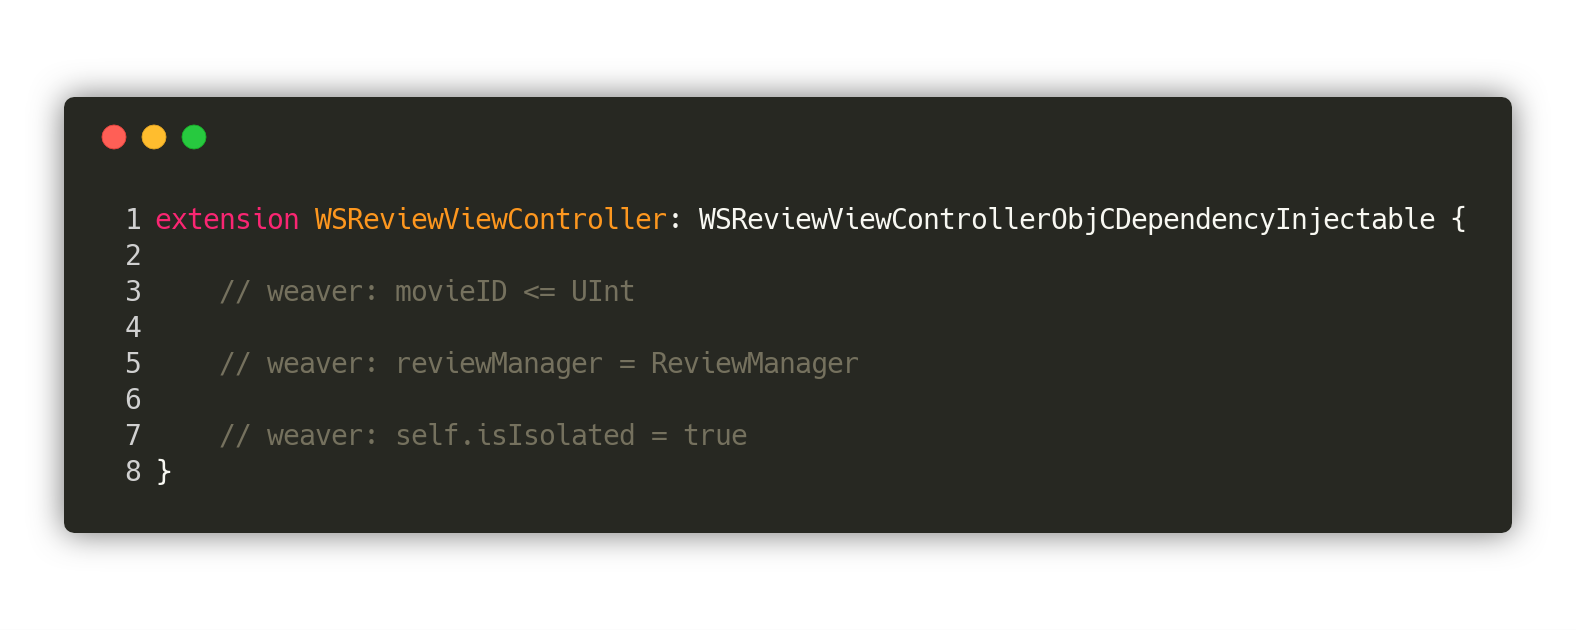 [WSReviewViewController+Injectable.swift on Gist](https://gist.github.com/trupin/29816f57a992fe174d0b6e1053f38076)